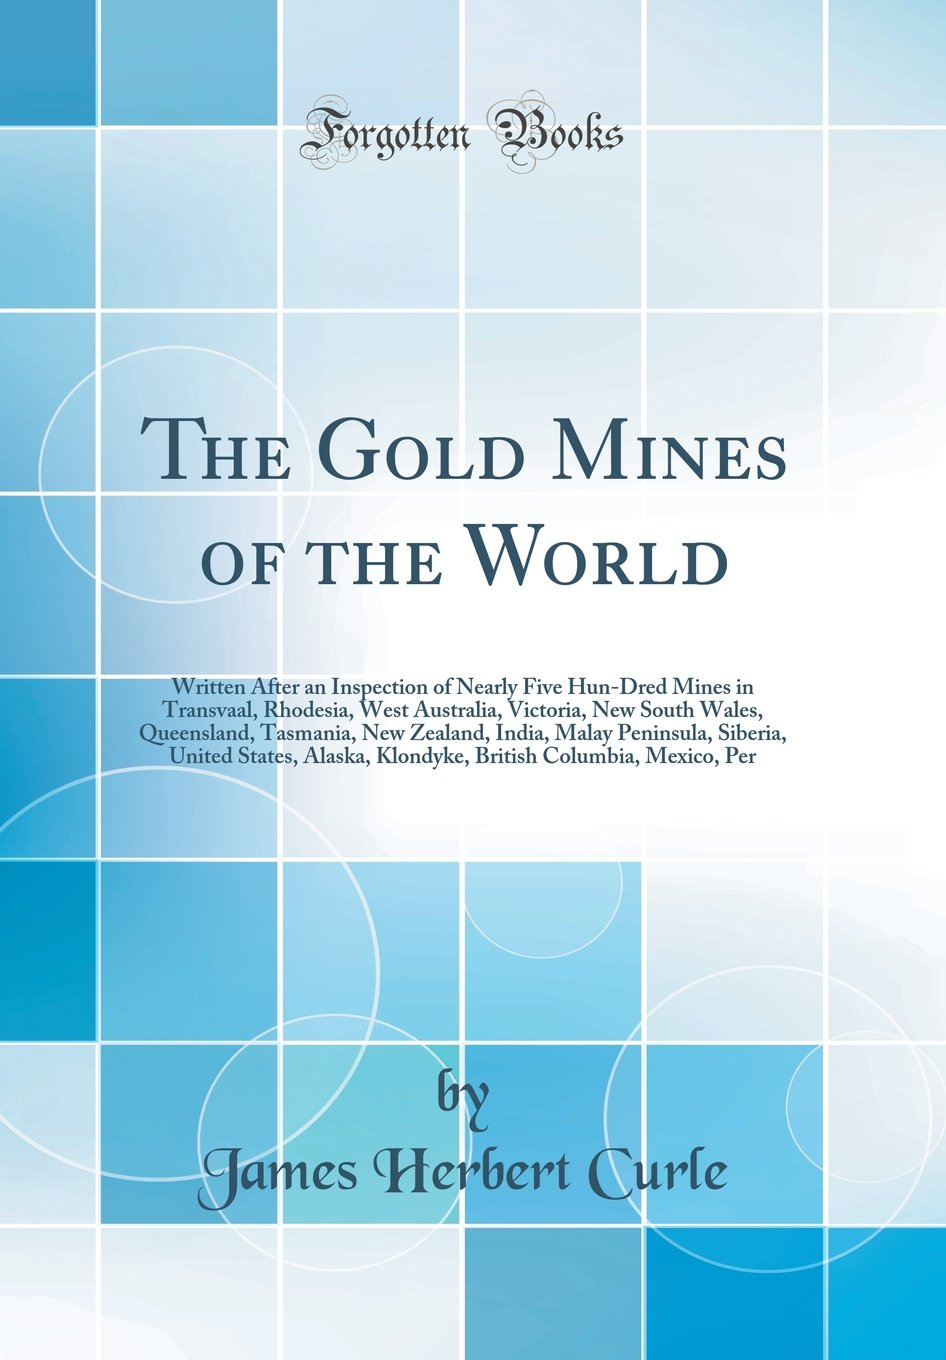 The Gold Mines of the World: Written After an Inspection of Nearly